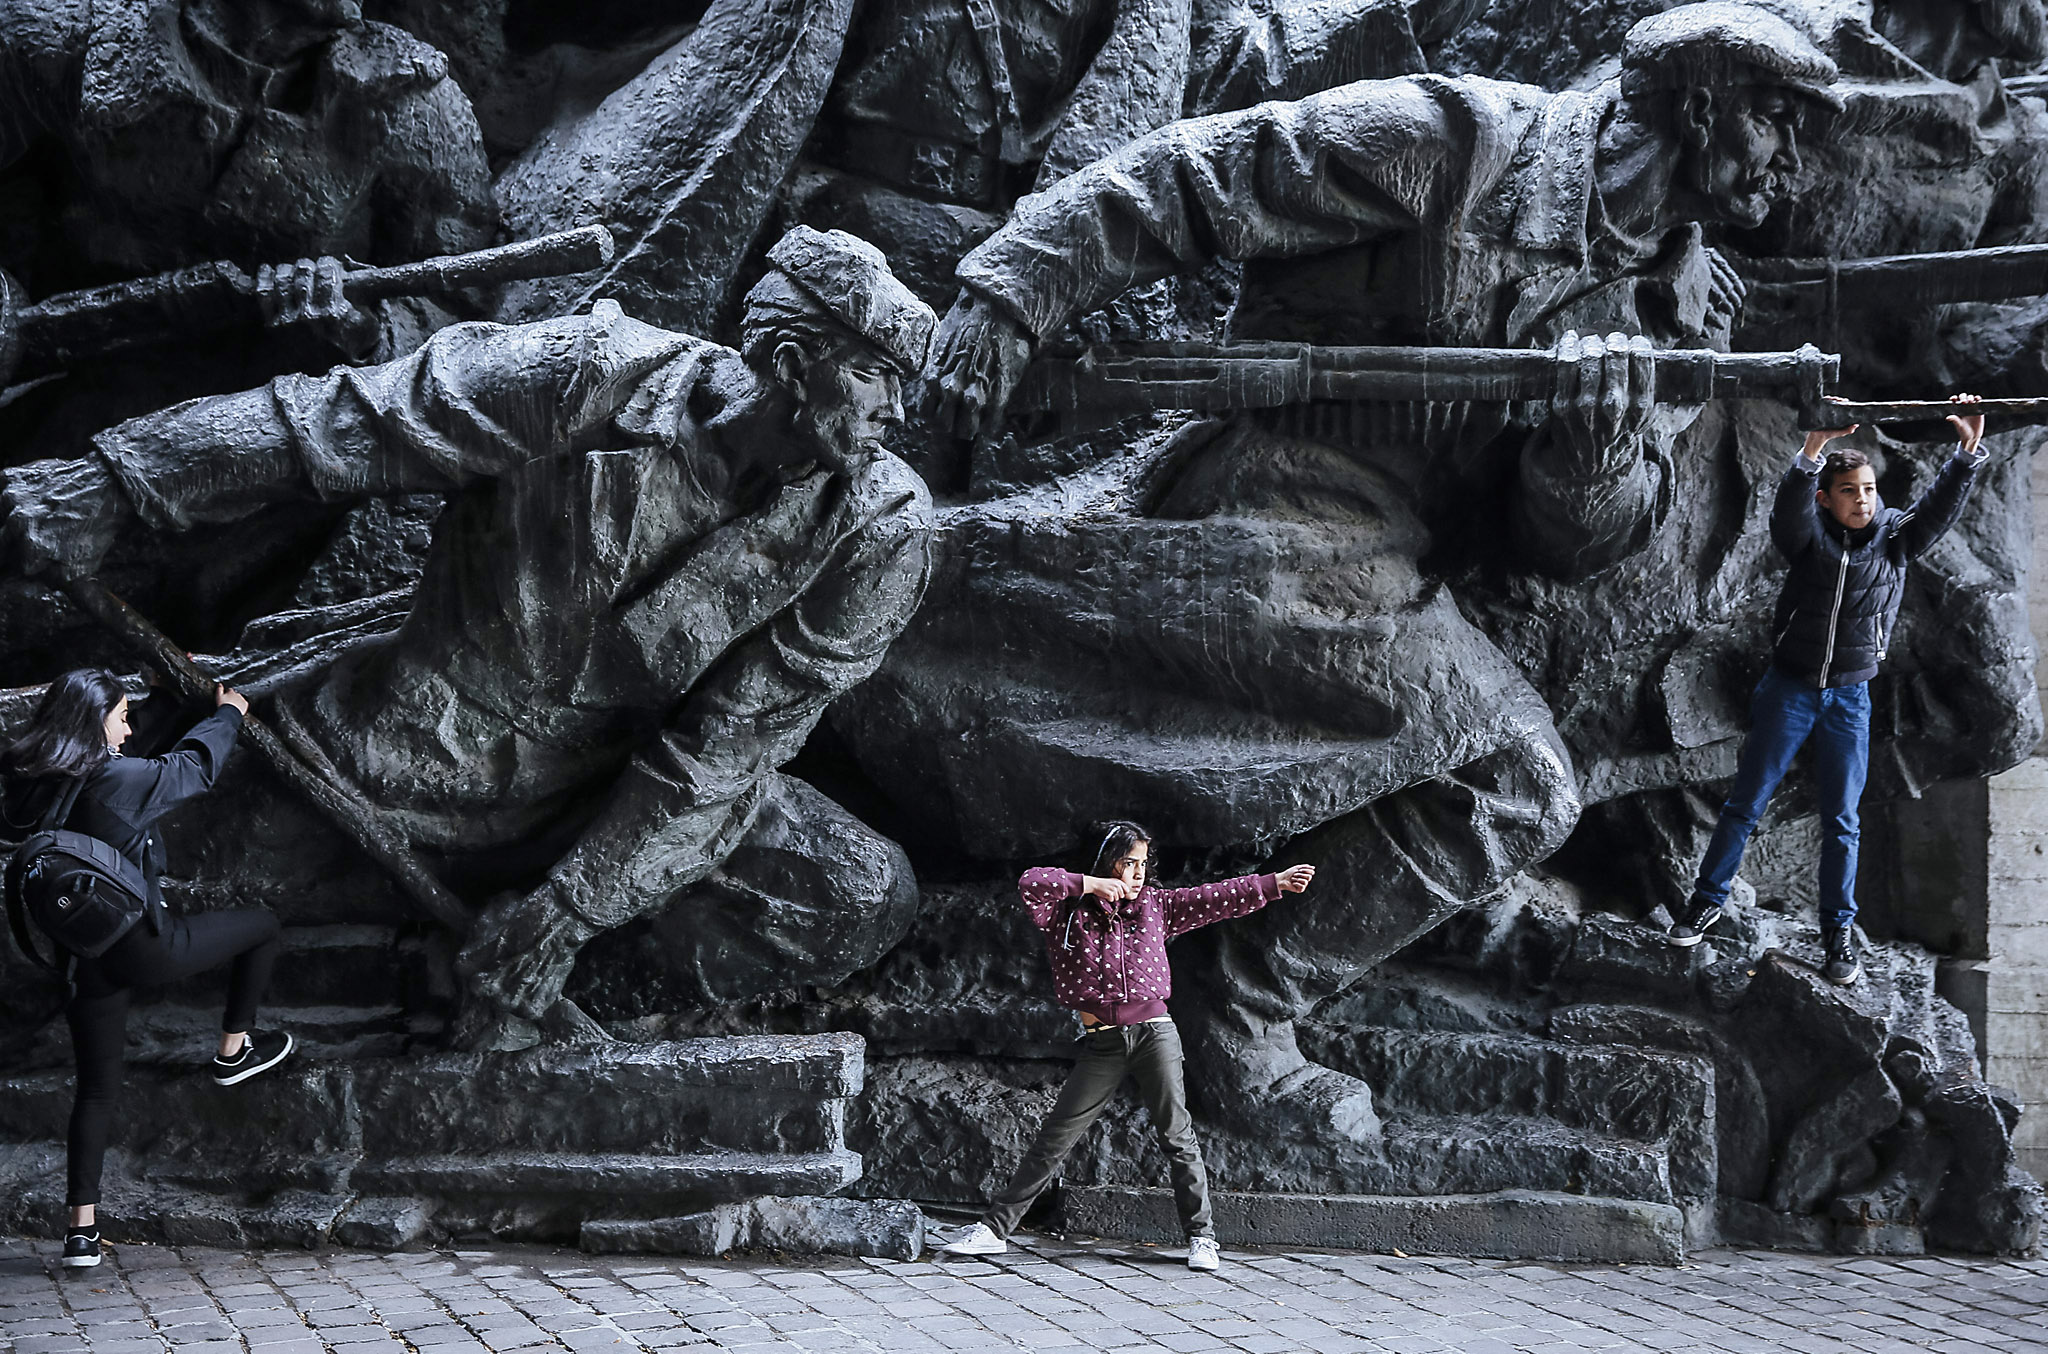 Ukrainians mark 71th anniversary of the liberation of Ukraine during WWII...epaselect epa05000276 Children play next to the bronze monument at the World War II museum complex in Kiev, Ukraine, 28 October 2015. Ukrainians mark 71th anniversary of the liberation of Ukraine from the Nazi occupation during WWII.  EPA/ROMAN PILIPEY